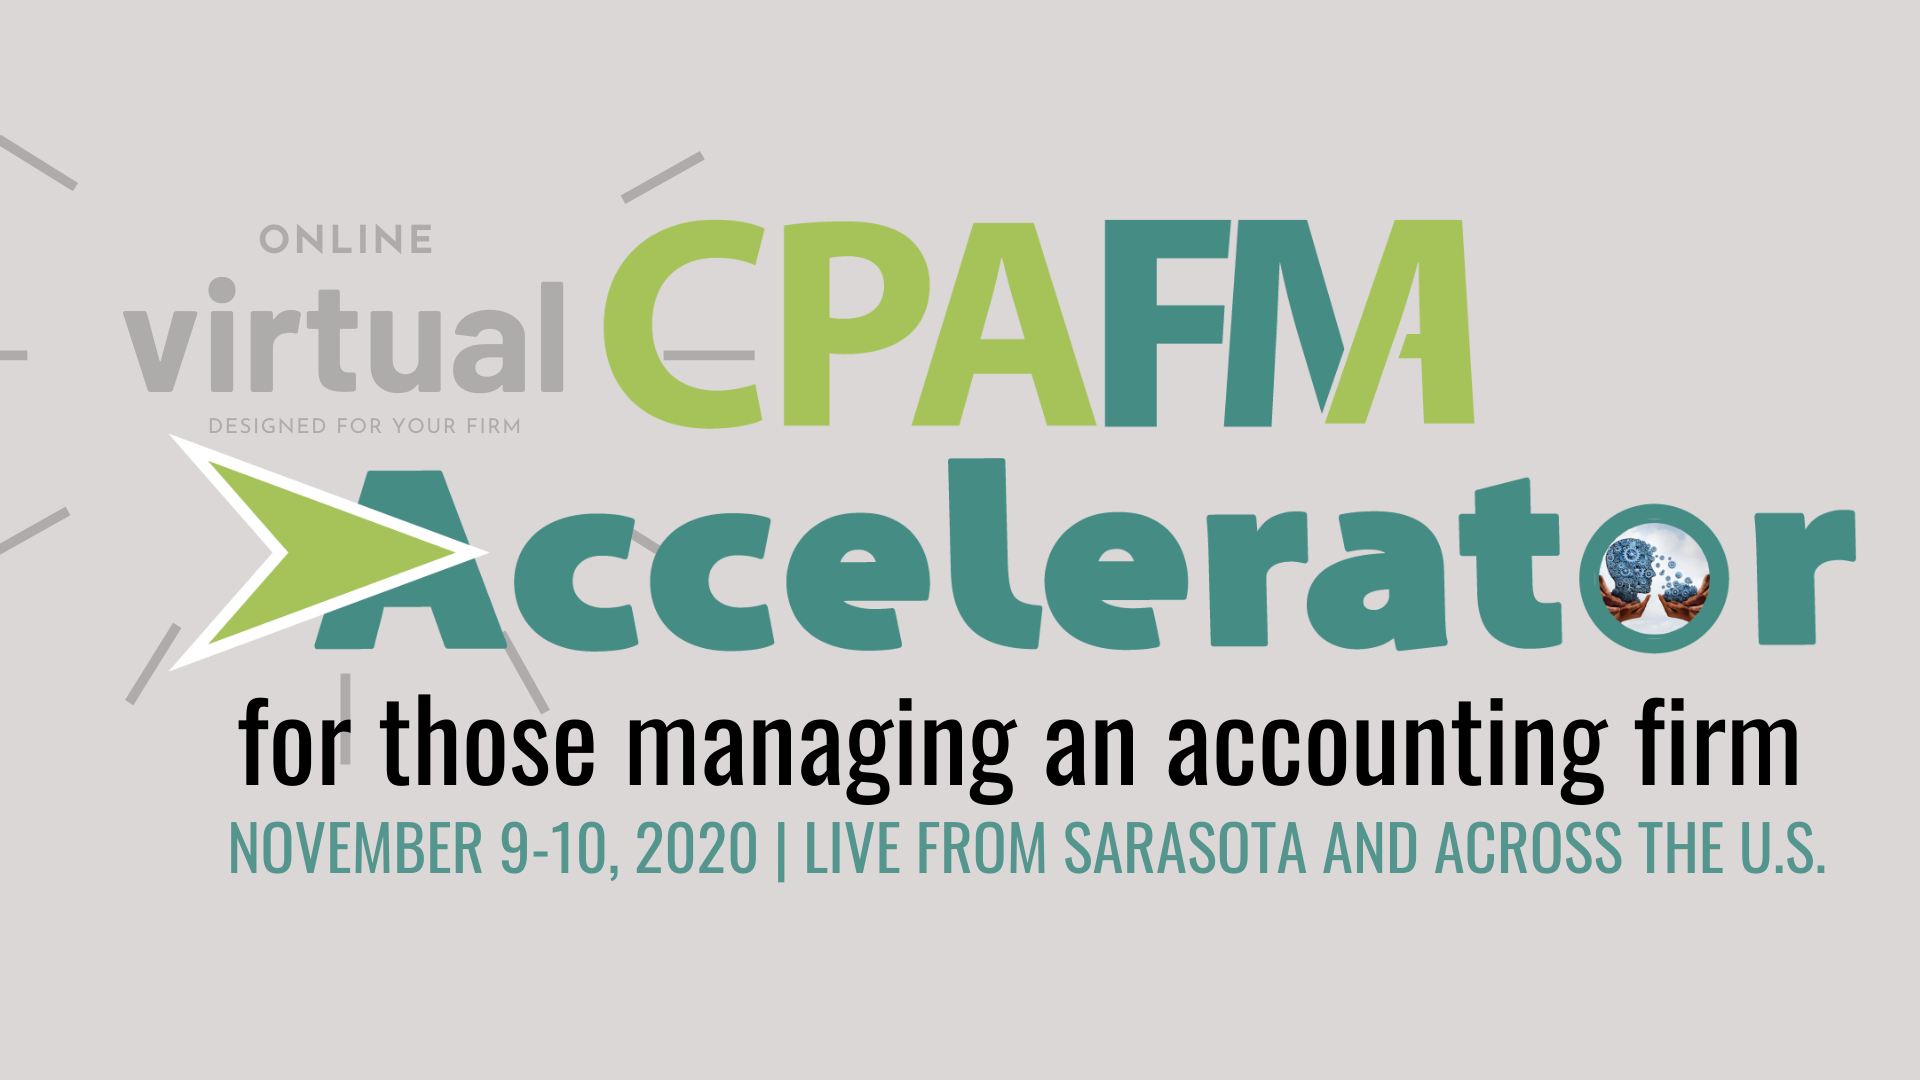 CPAFMA 2020 Accelerator